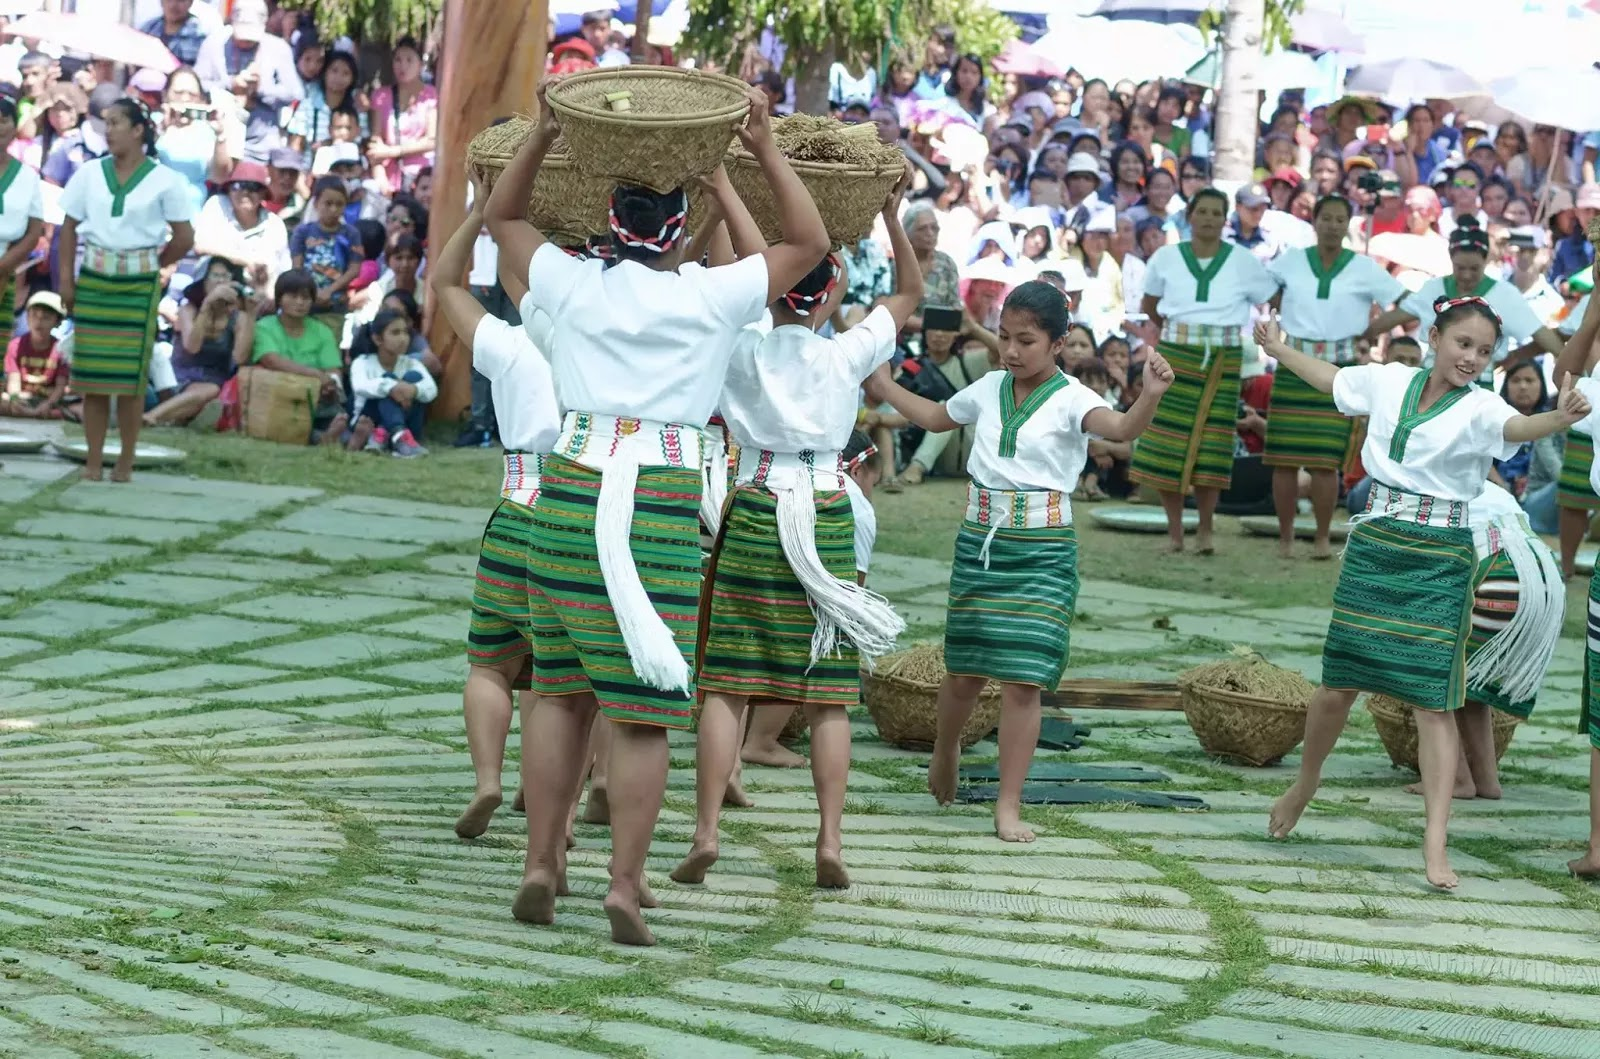 Bountiful Rice Harvest Dance 13th Lang-Ay Festival Bontoc Mountain Province Cordillera Administrative Region Philippines